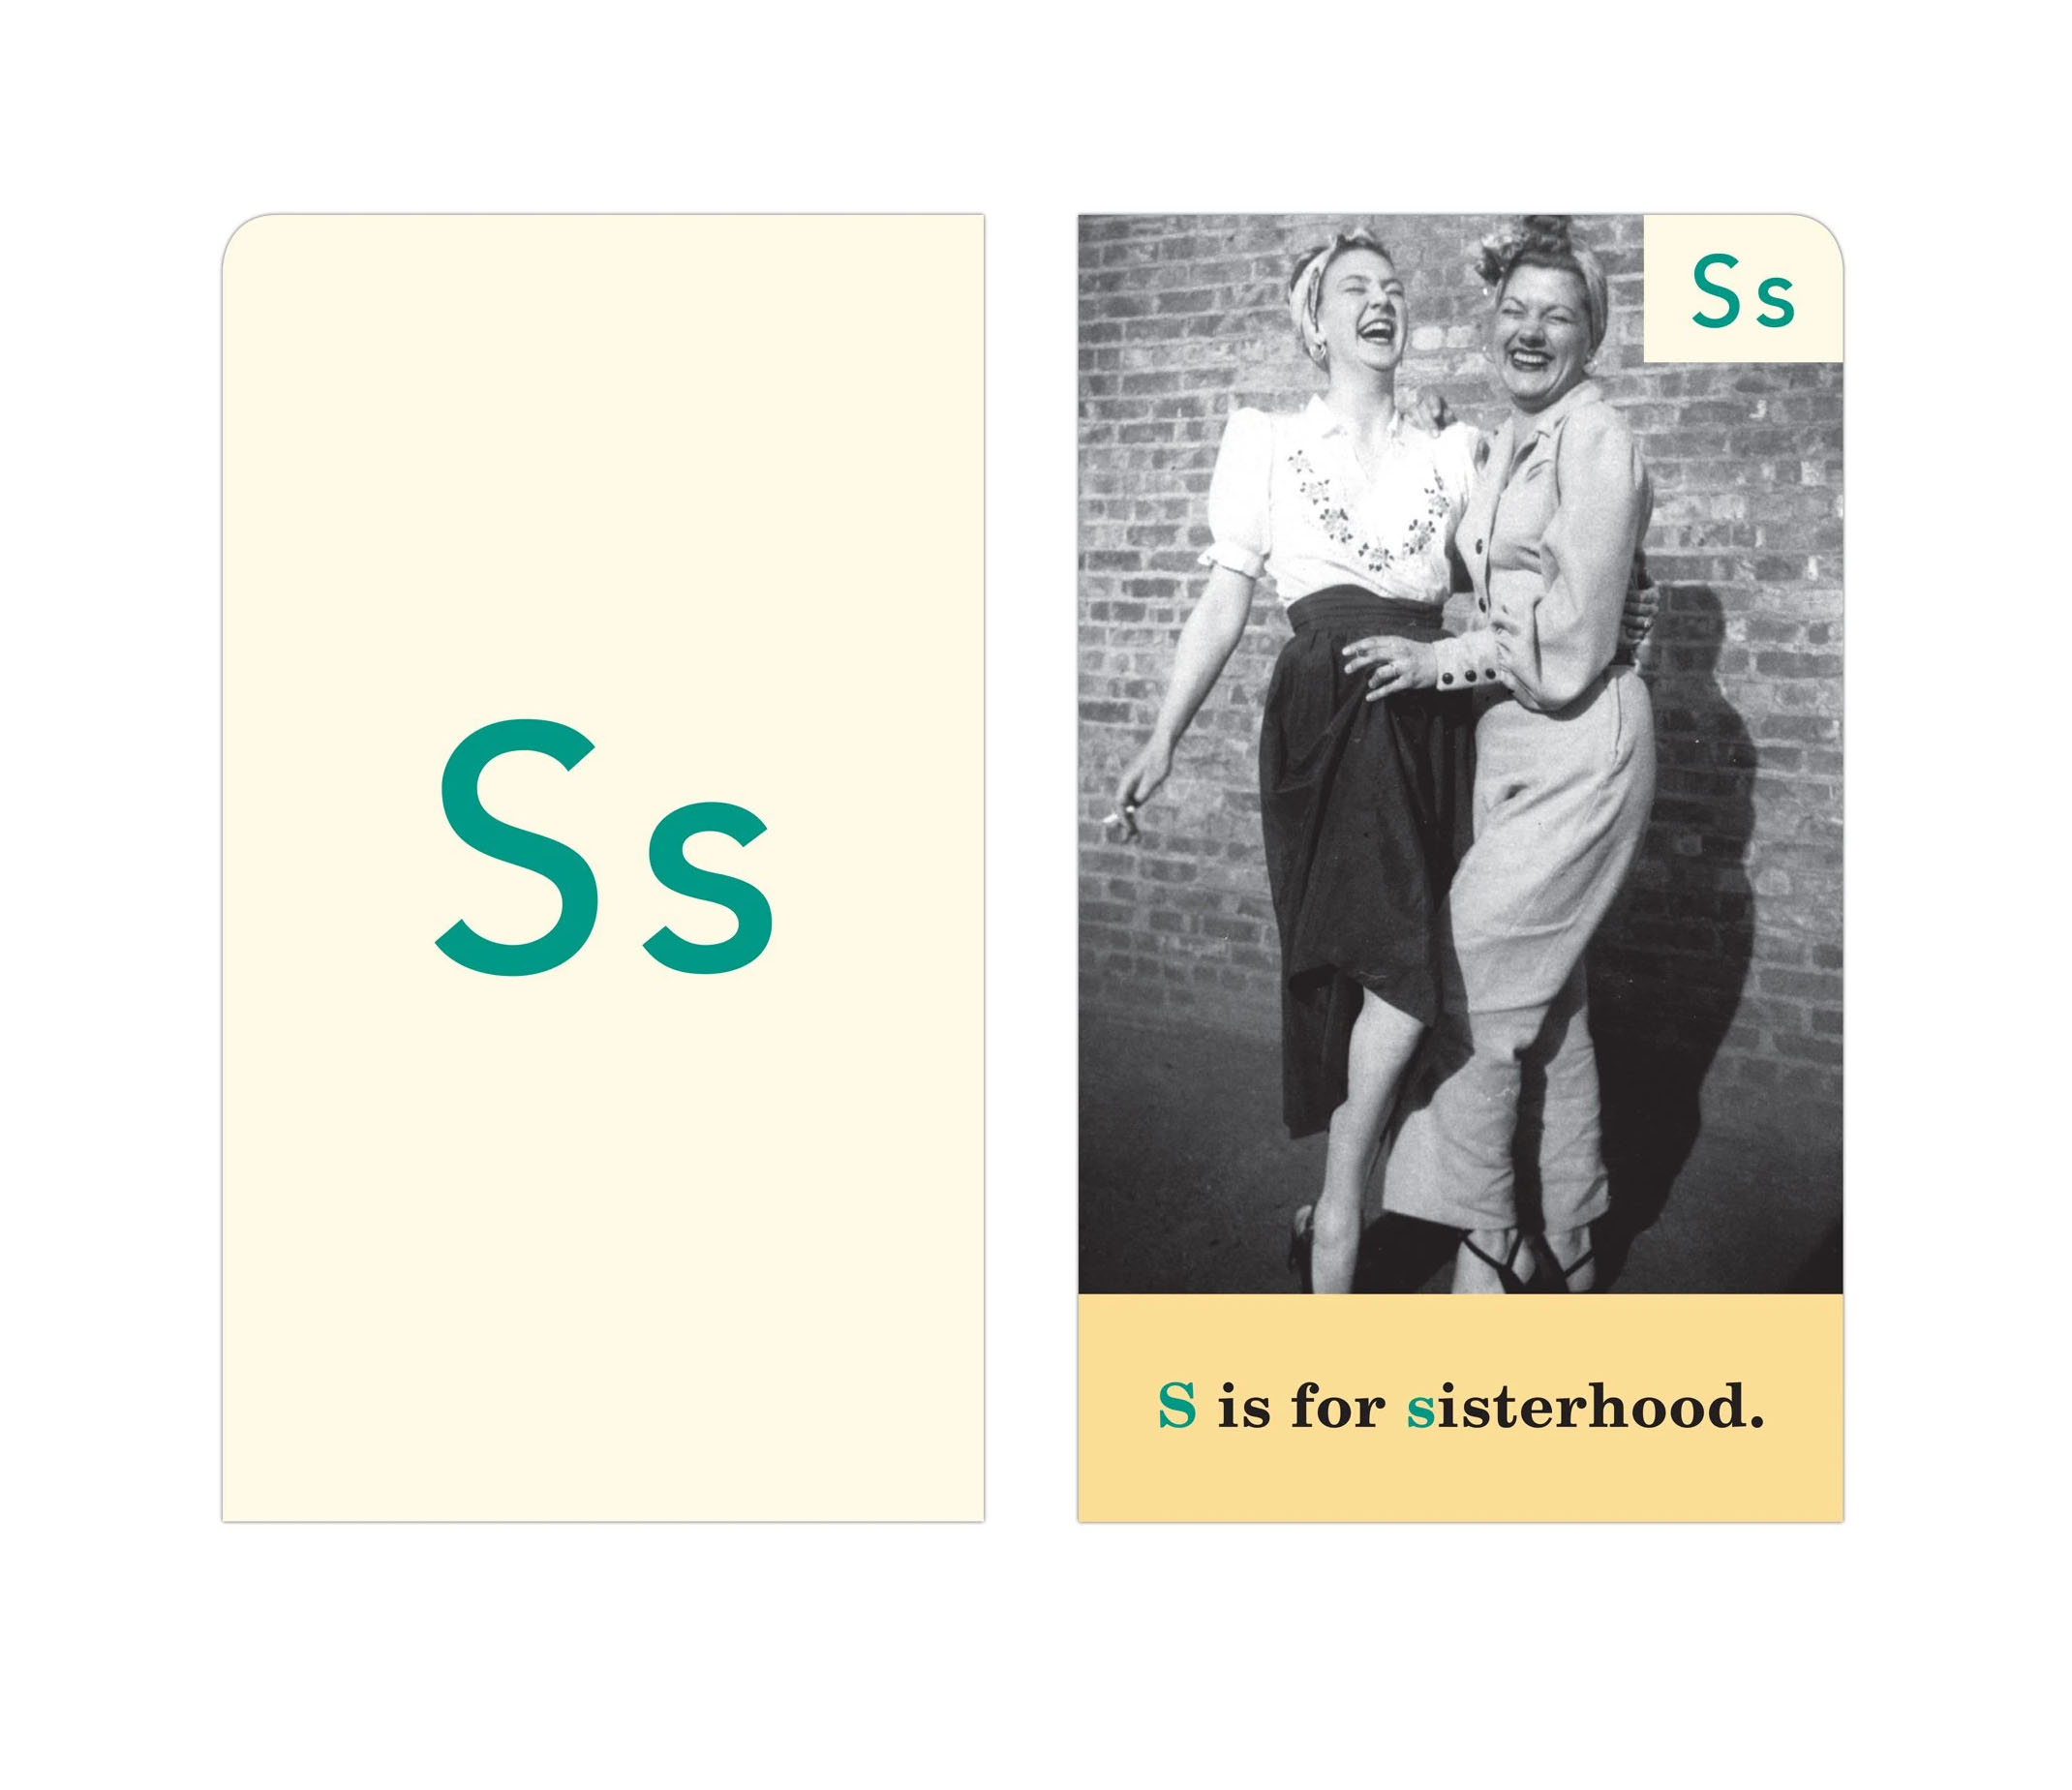 The letter card S stands for sisterhood. The front of the card is a cream color paper with the letter S on it in green. The back of the card features an image of two women laughing while holding another.